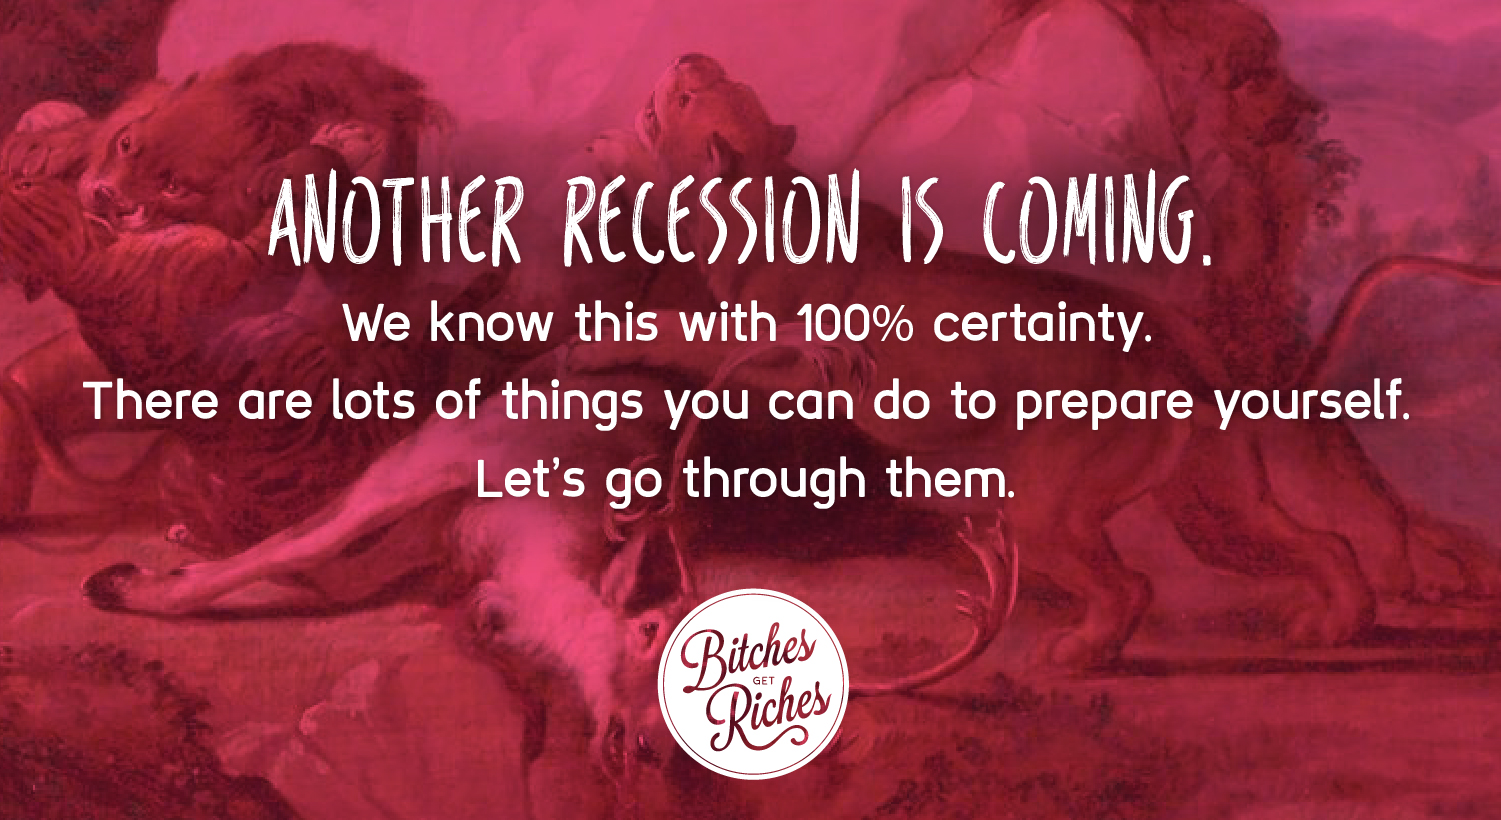 http://www.bitchesgetriches.com/ask-the-bitches-how-do-i-prepare-for-a-recession/